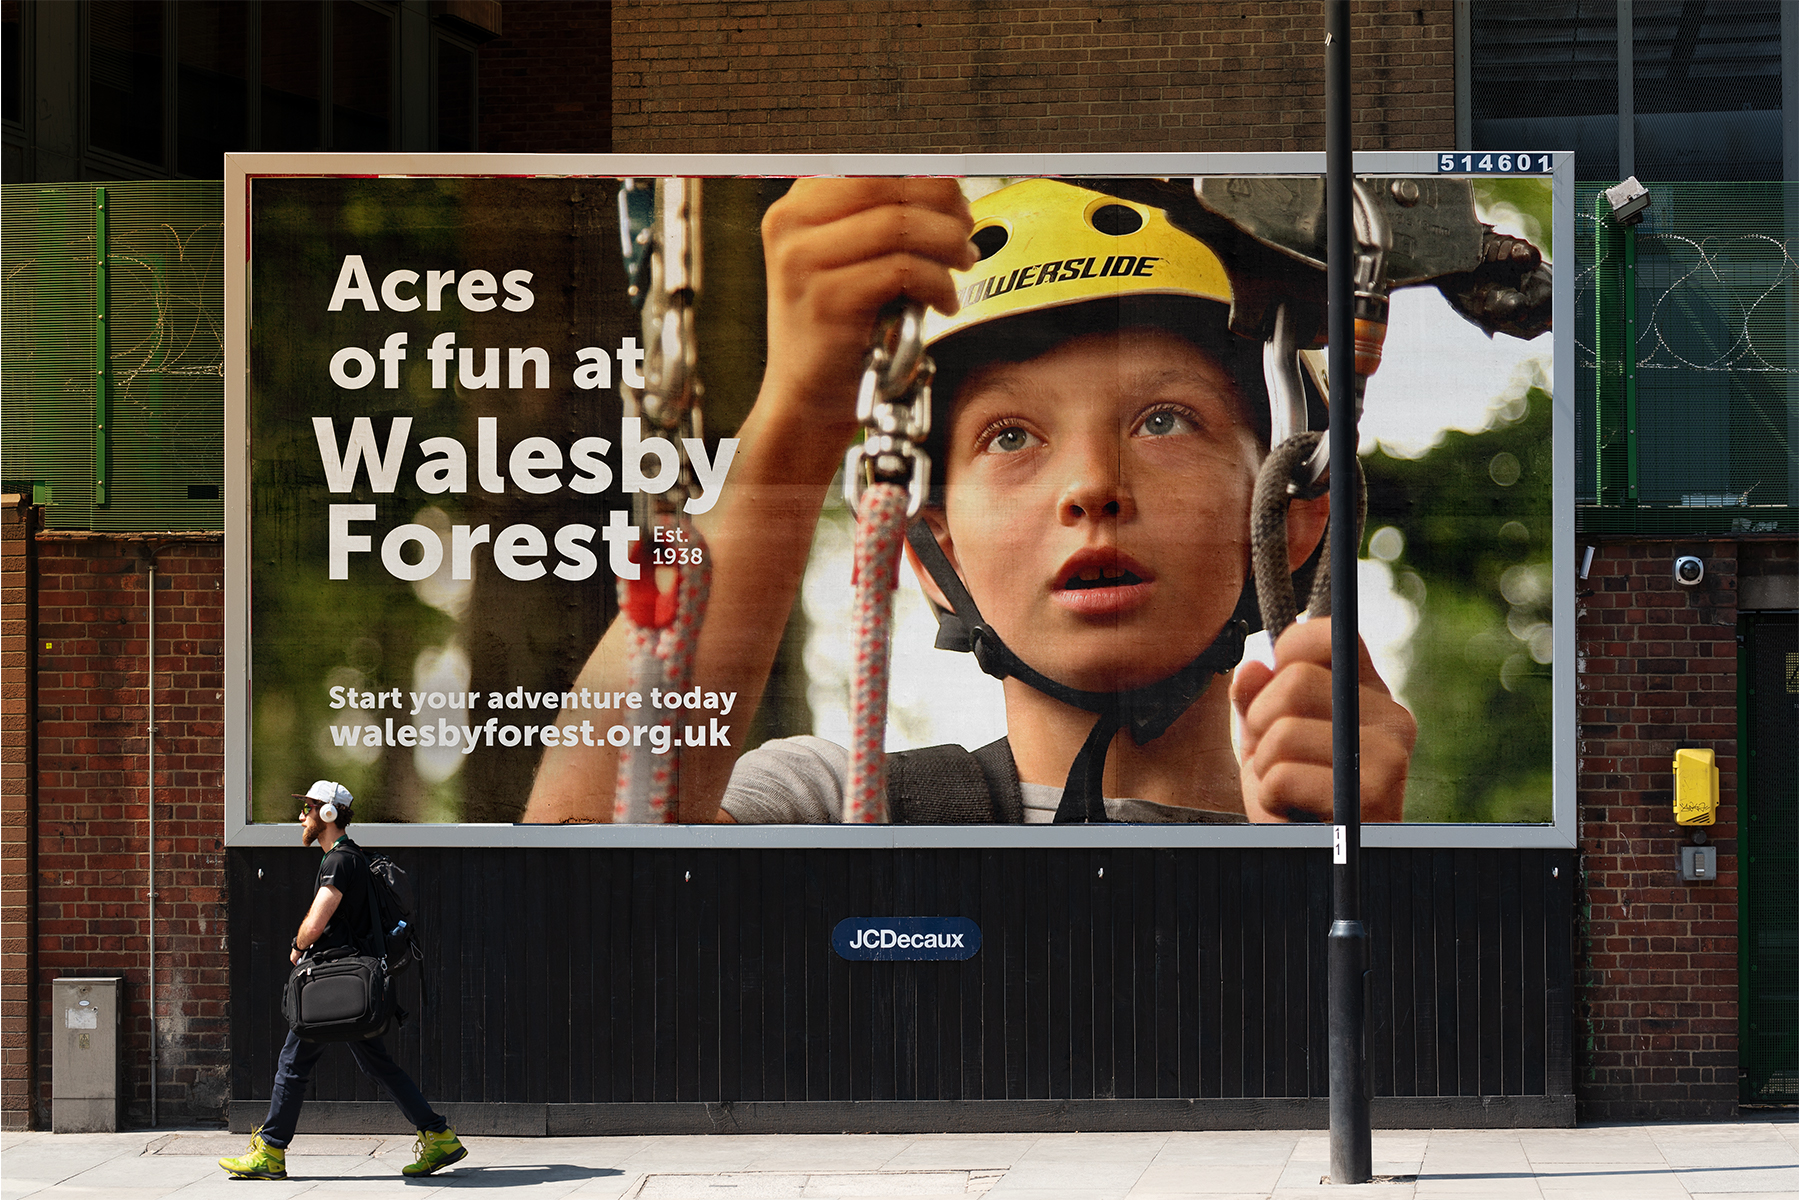 Walebsy Forest Advertising Mockup